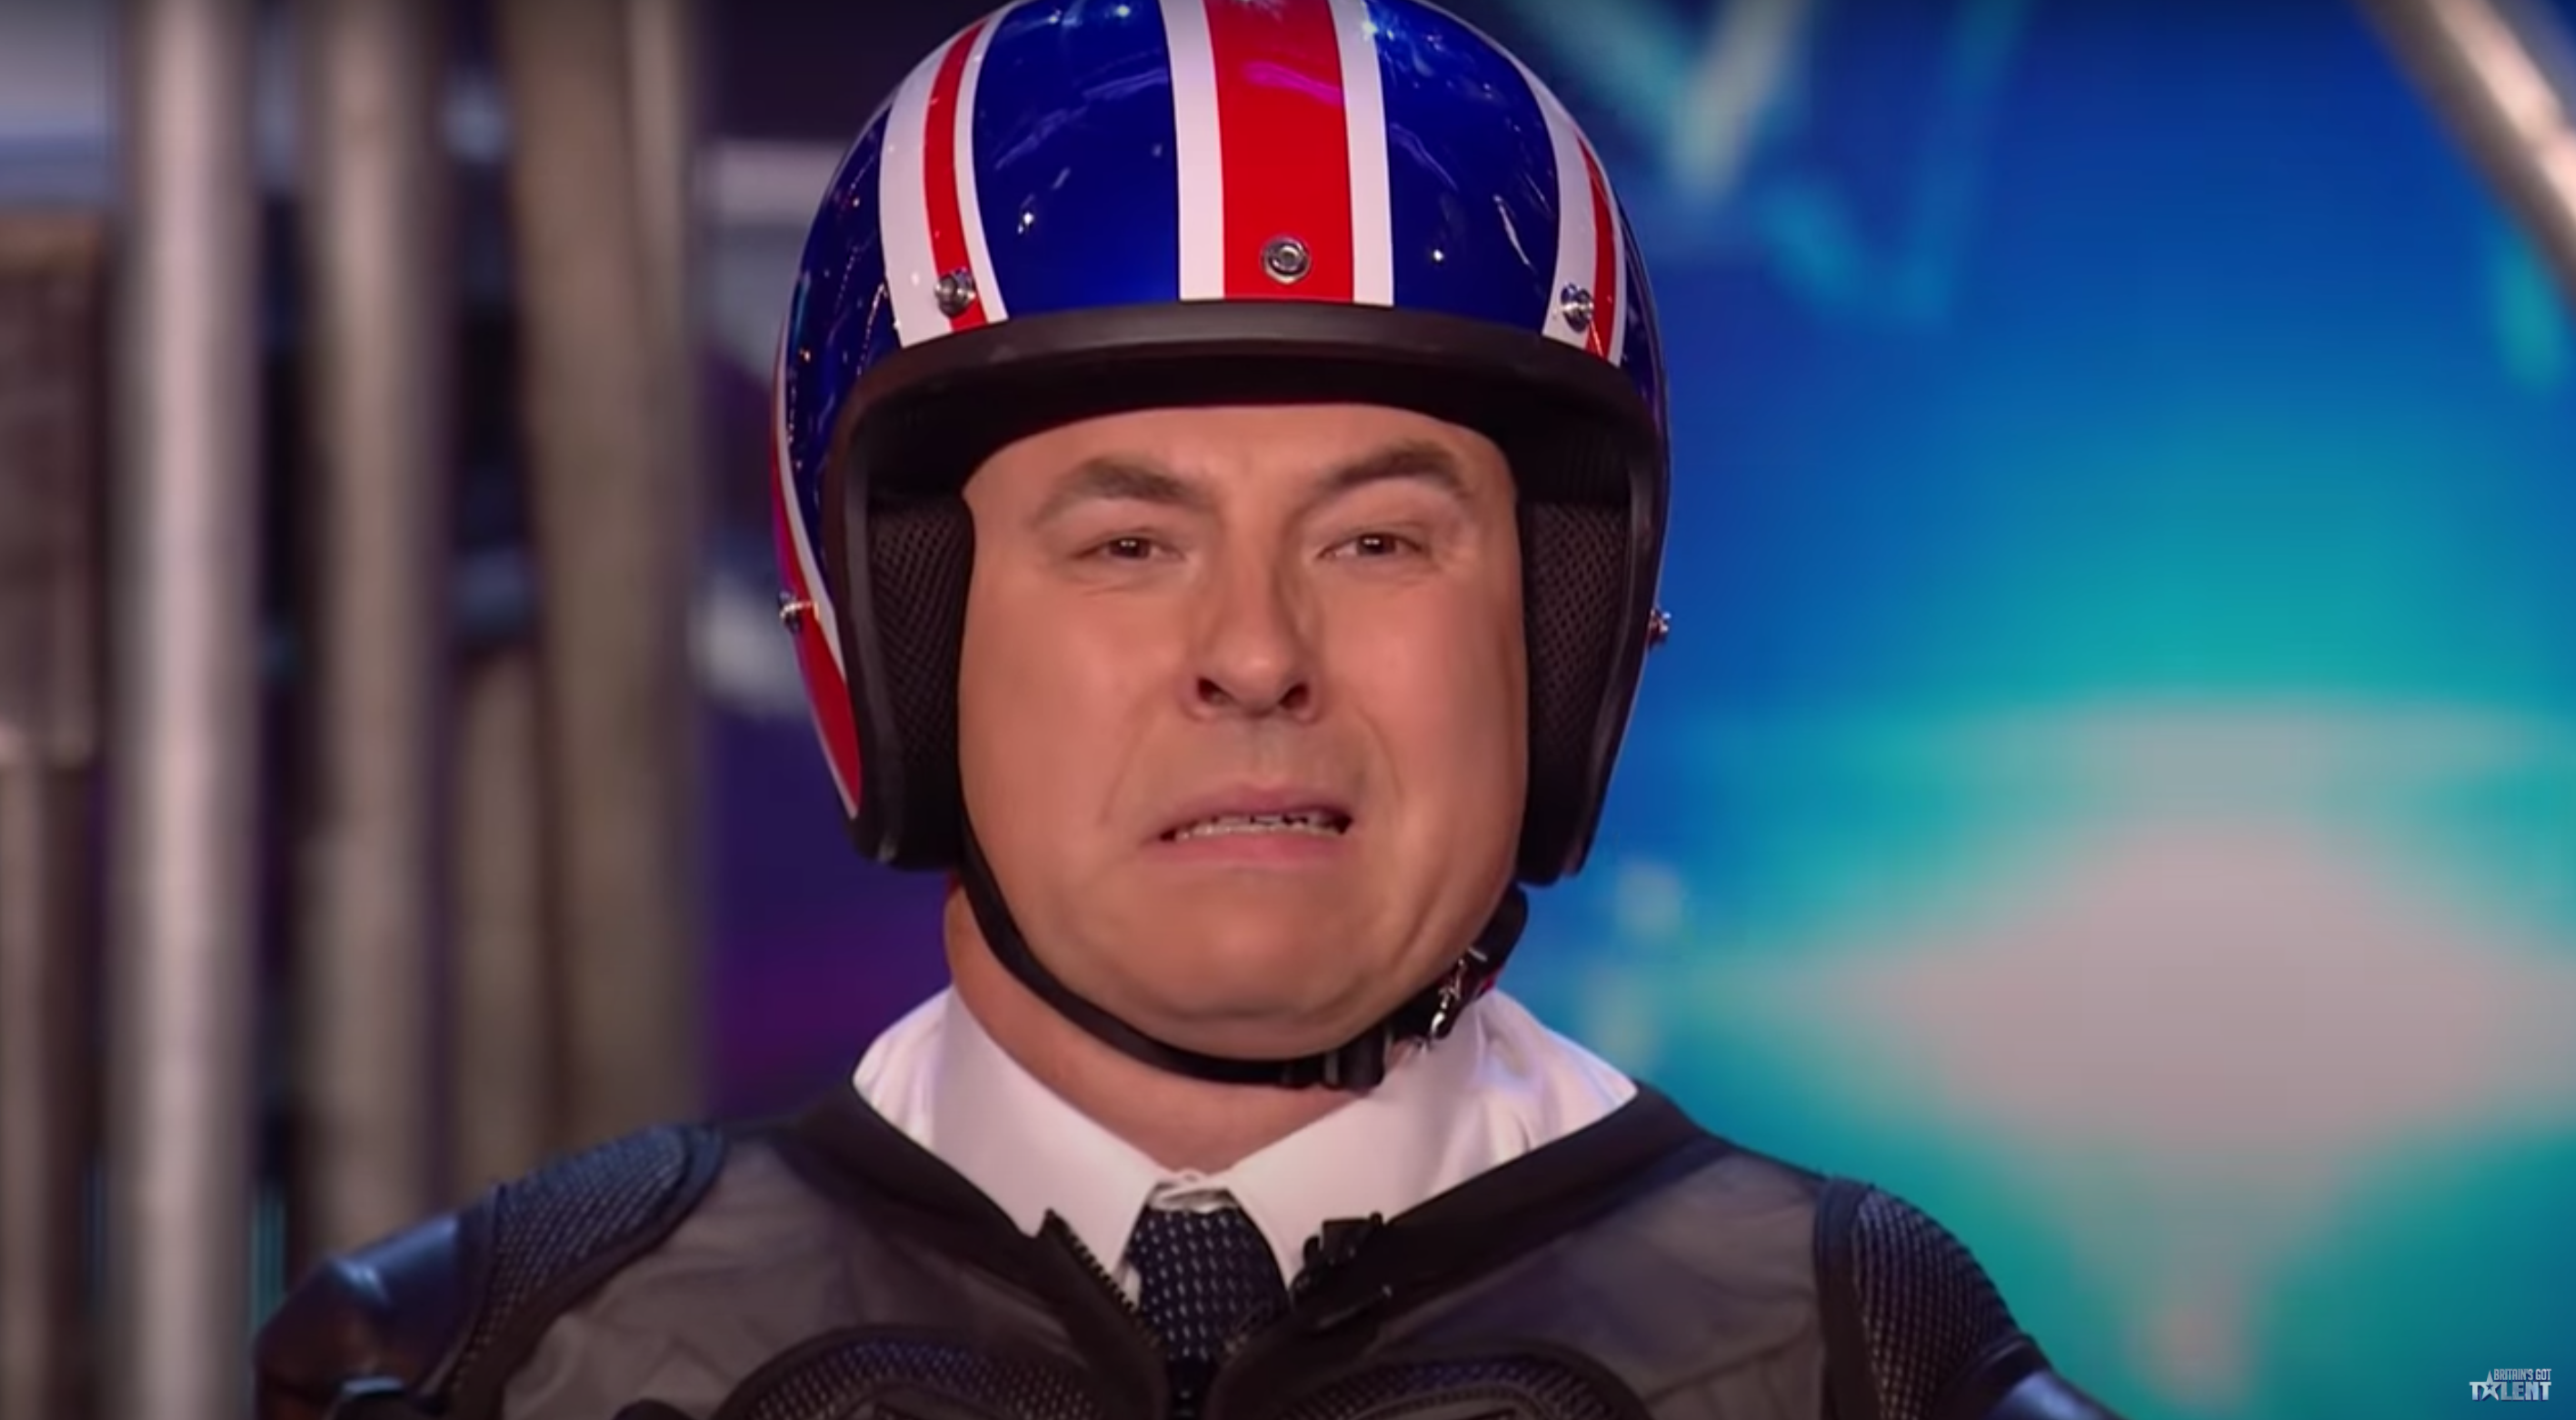 Britain's Got Talent: Declan Donnelly gives David Walliams a very cheeky pat ahead of 'dangerous' stunt